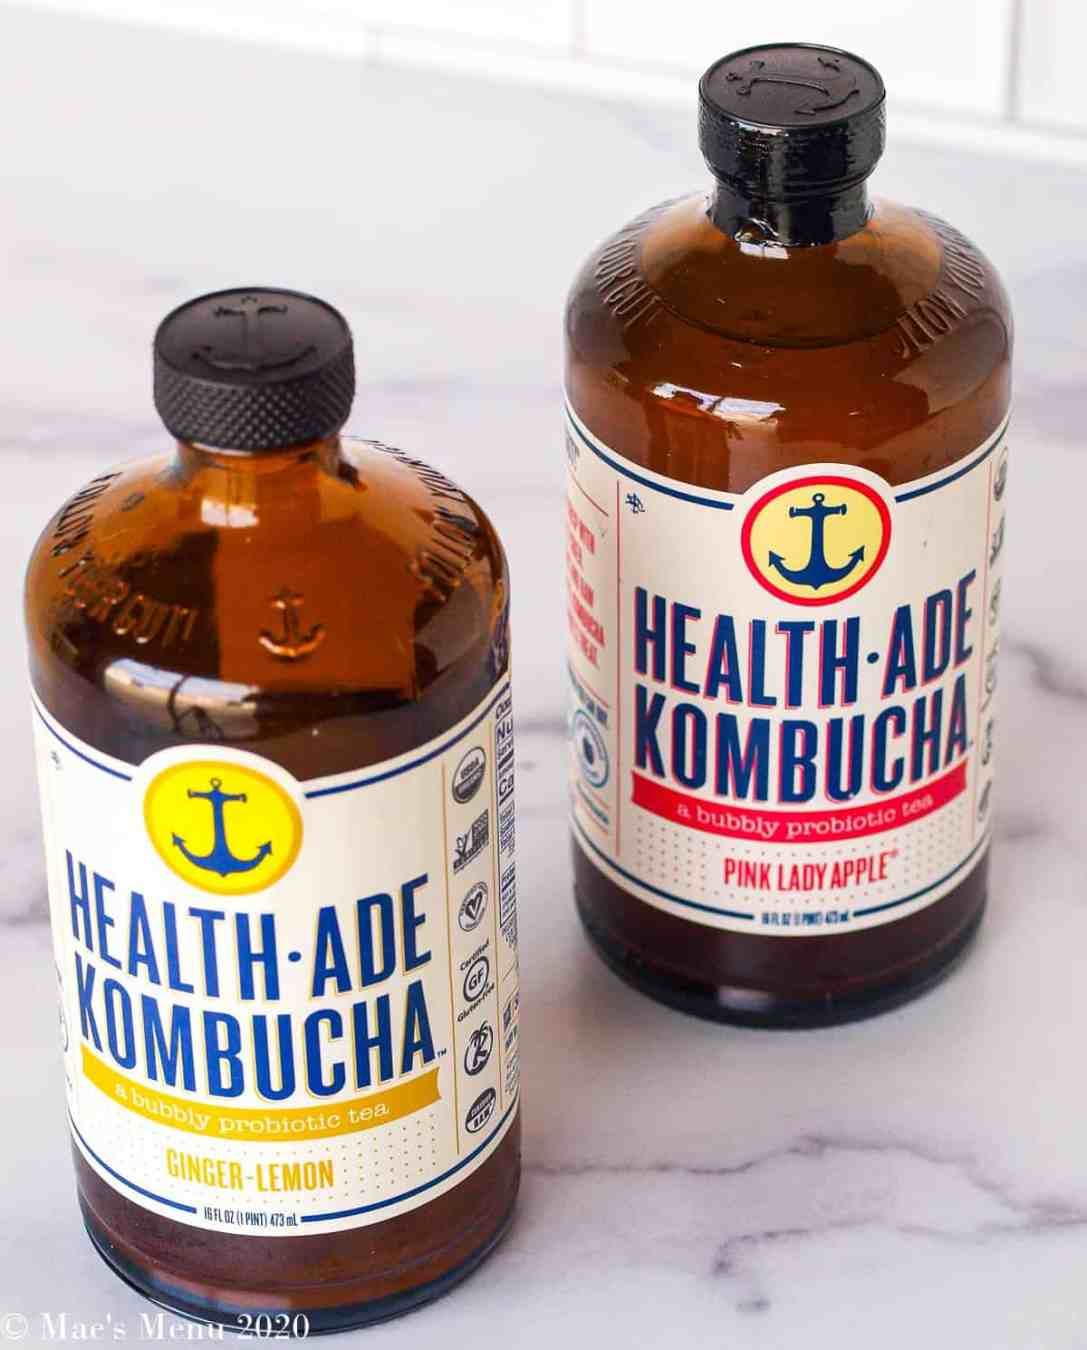 An above shot of two bottles of health ade kombucha. One bottle is lemon ginger and the other is pink lady apple.